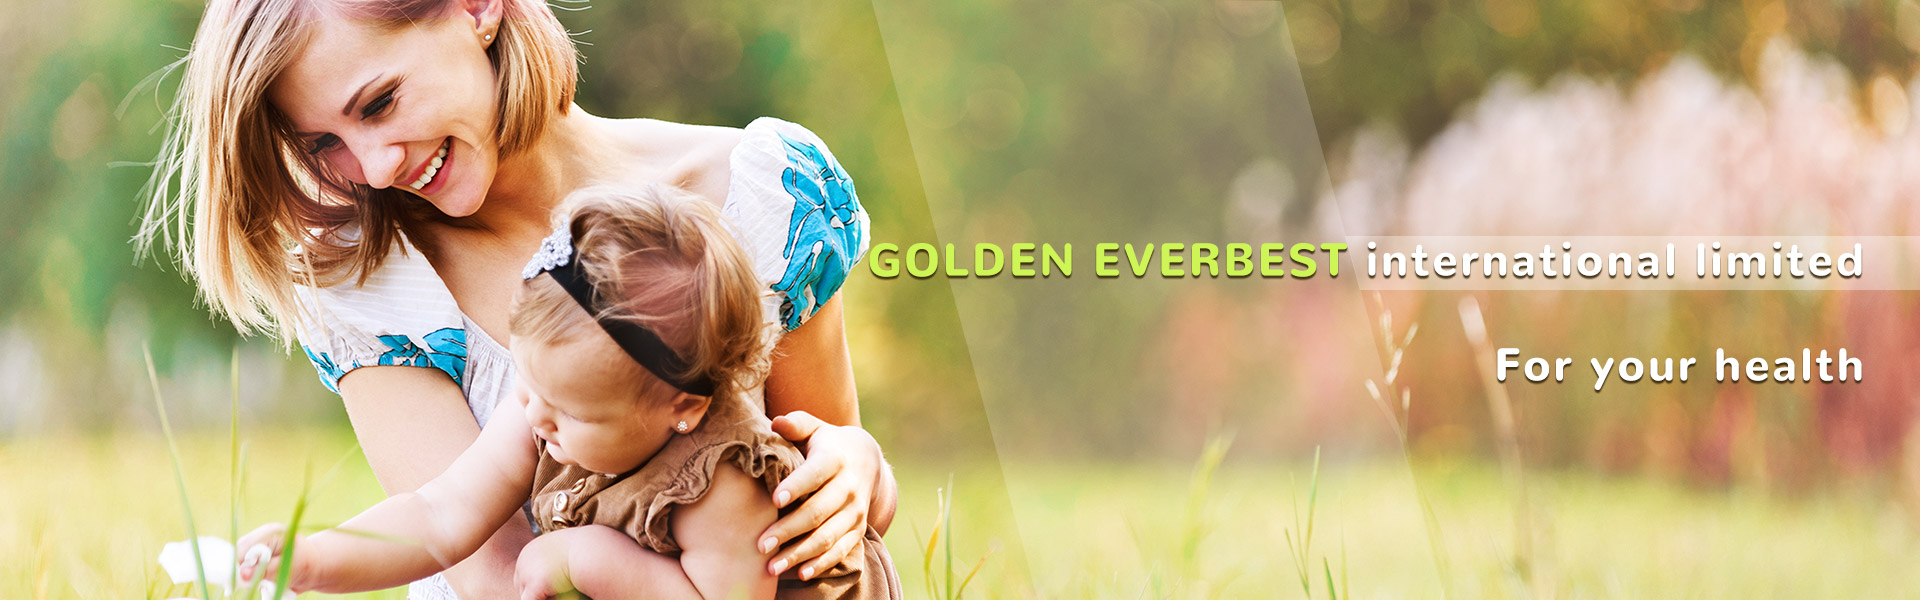 GOLDEN everbest international limited